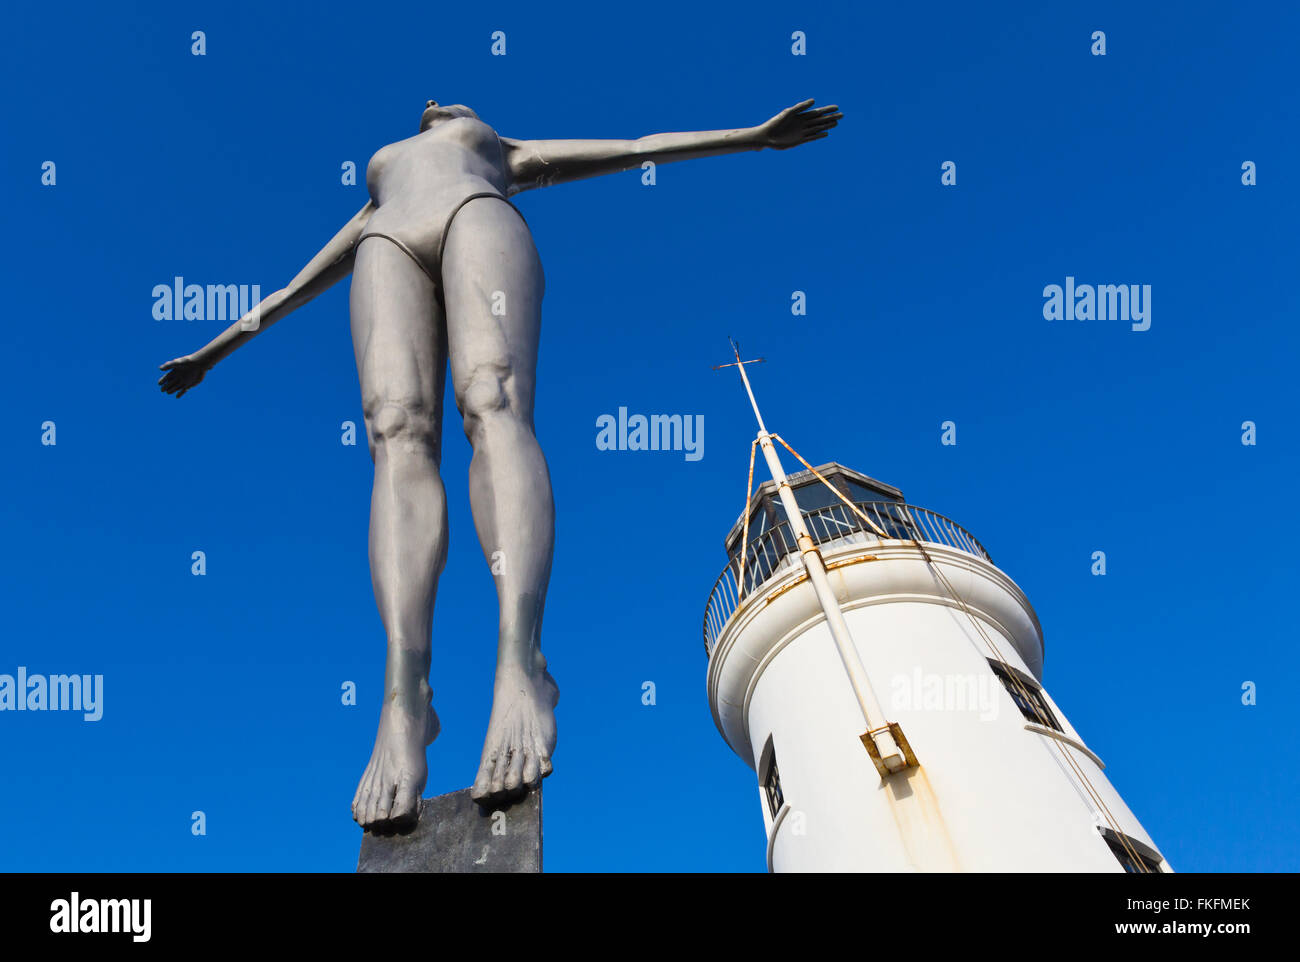 Diving Belle sculpture and Scarborough Lighthouse, Yorkshire, UK - Stock Image